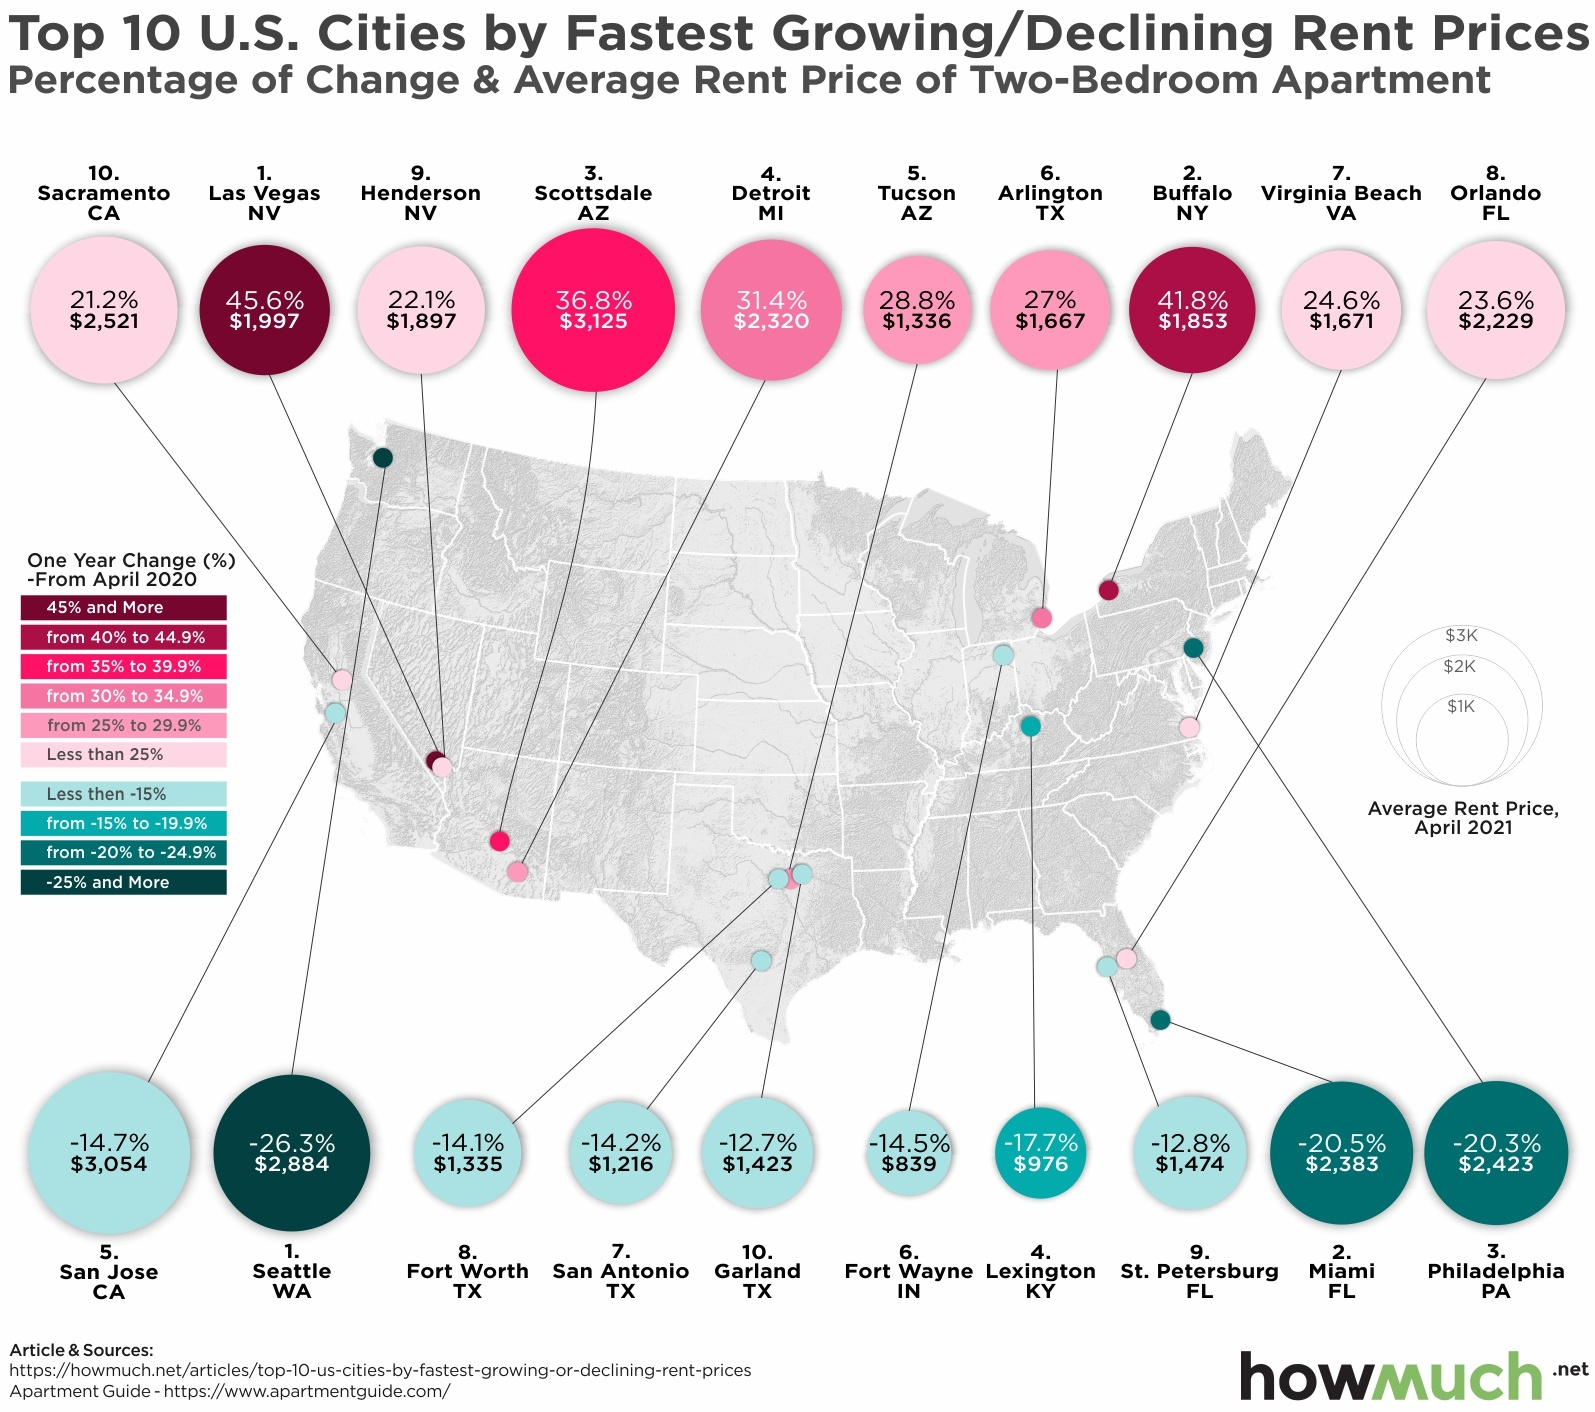 The State of the Rental Market Map